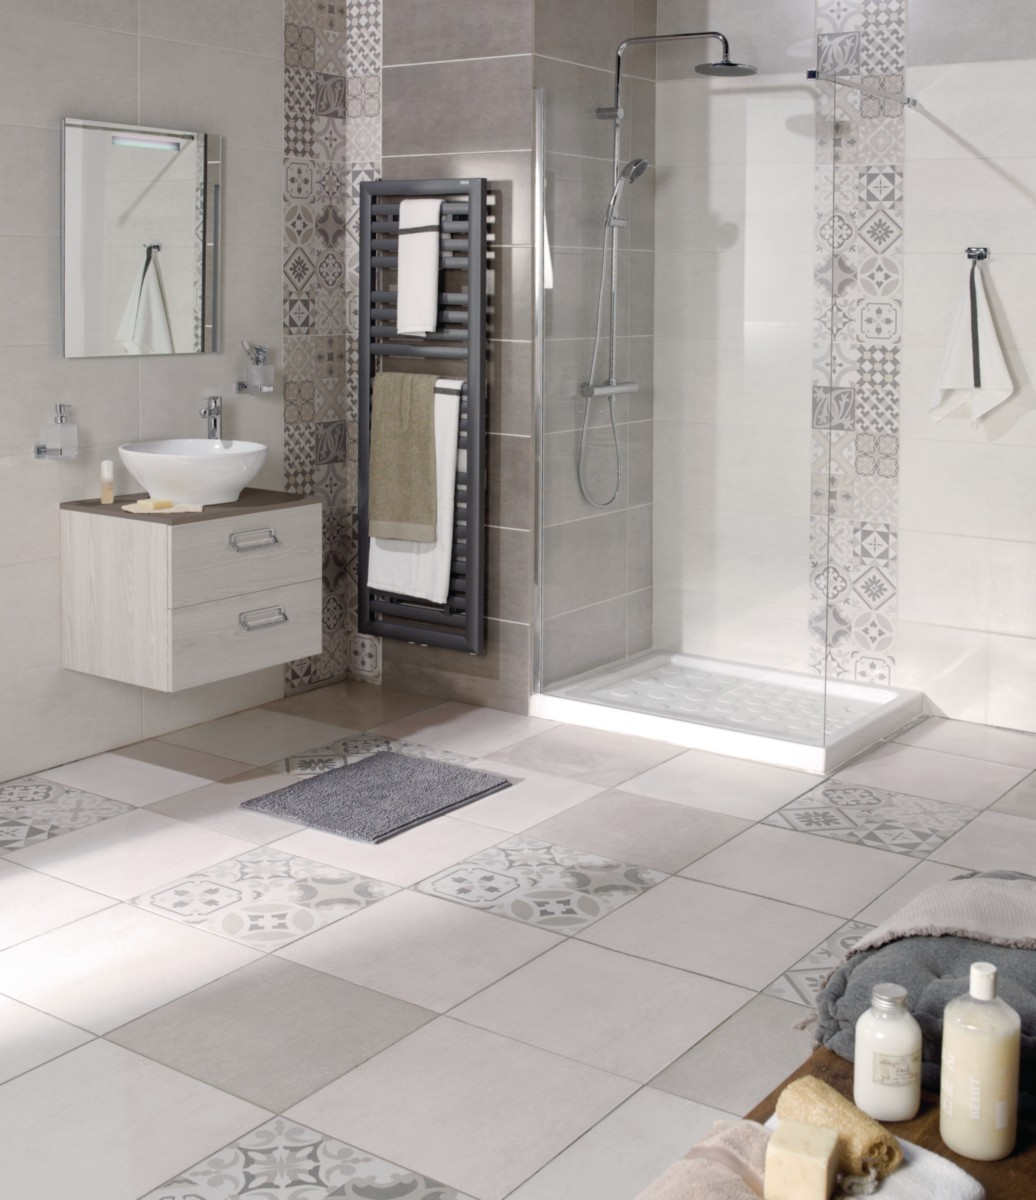 Point p carrelage mural salle de bain carrelage id es for Carrelage spot point p